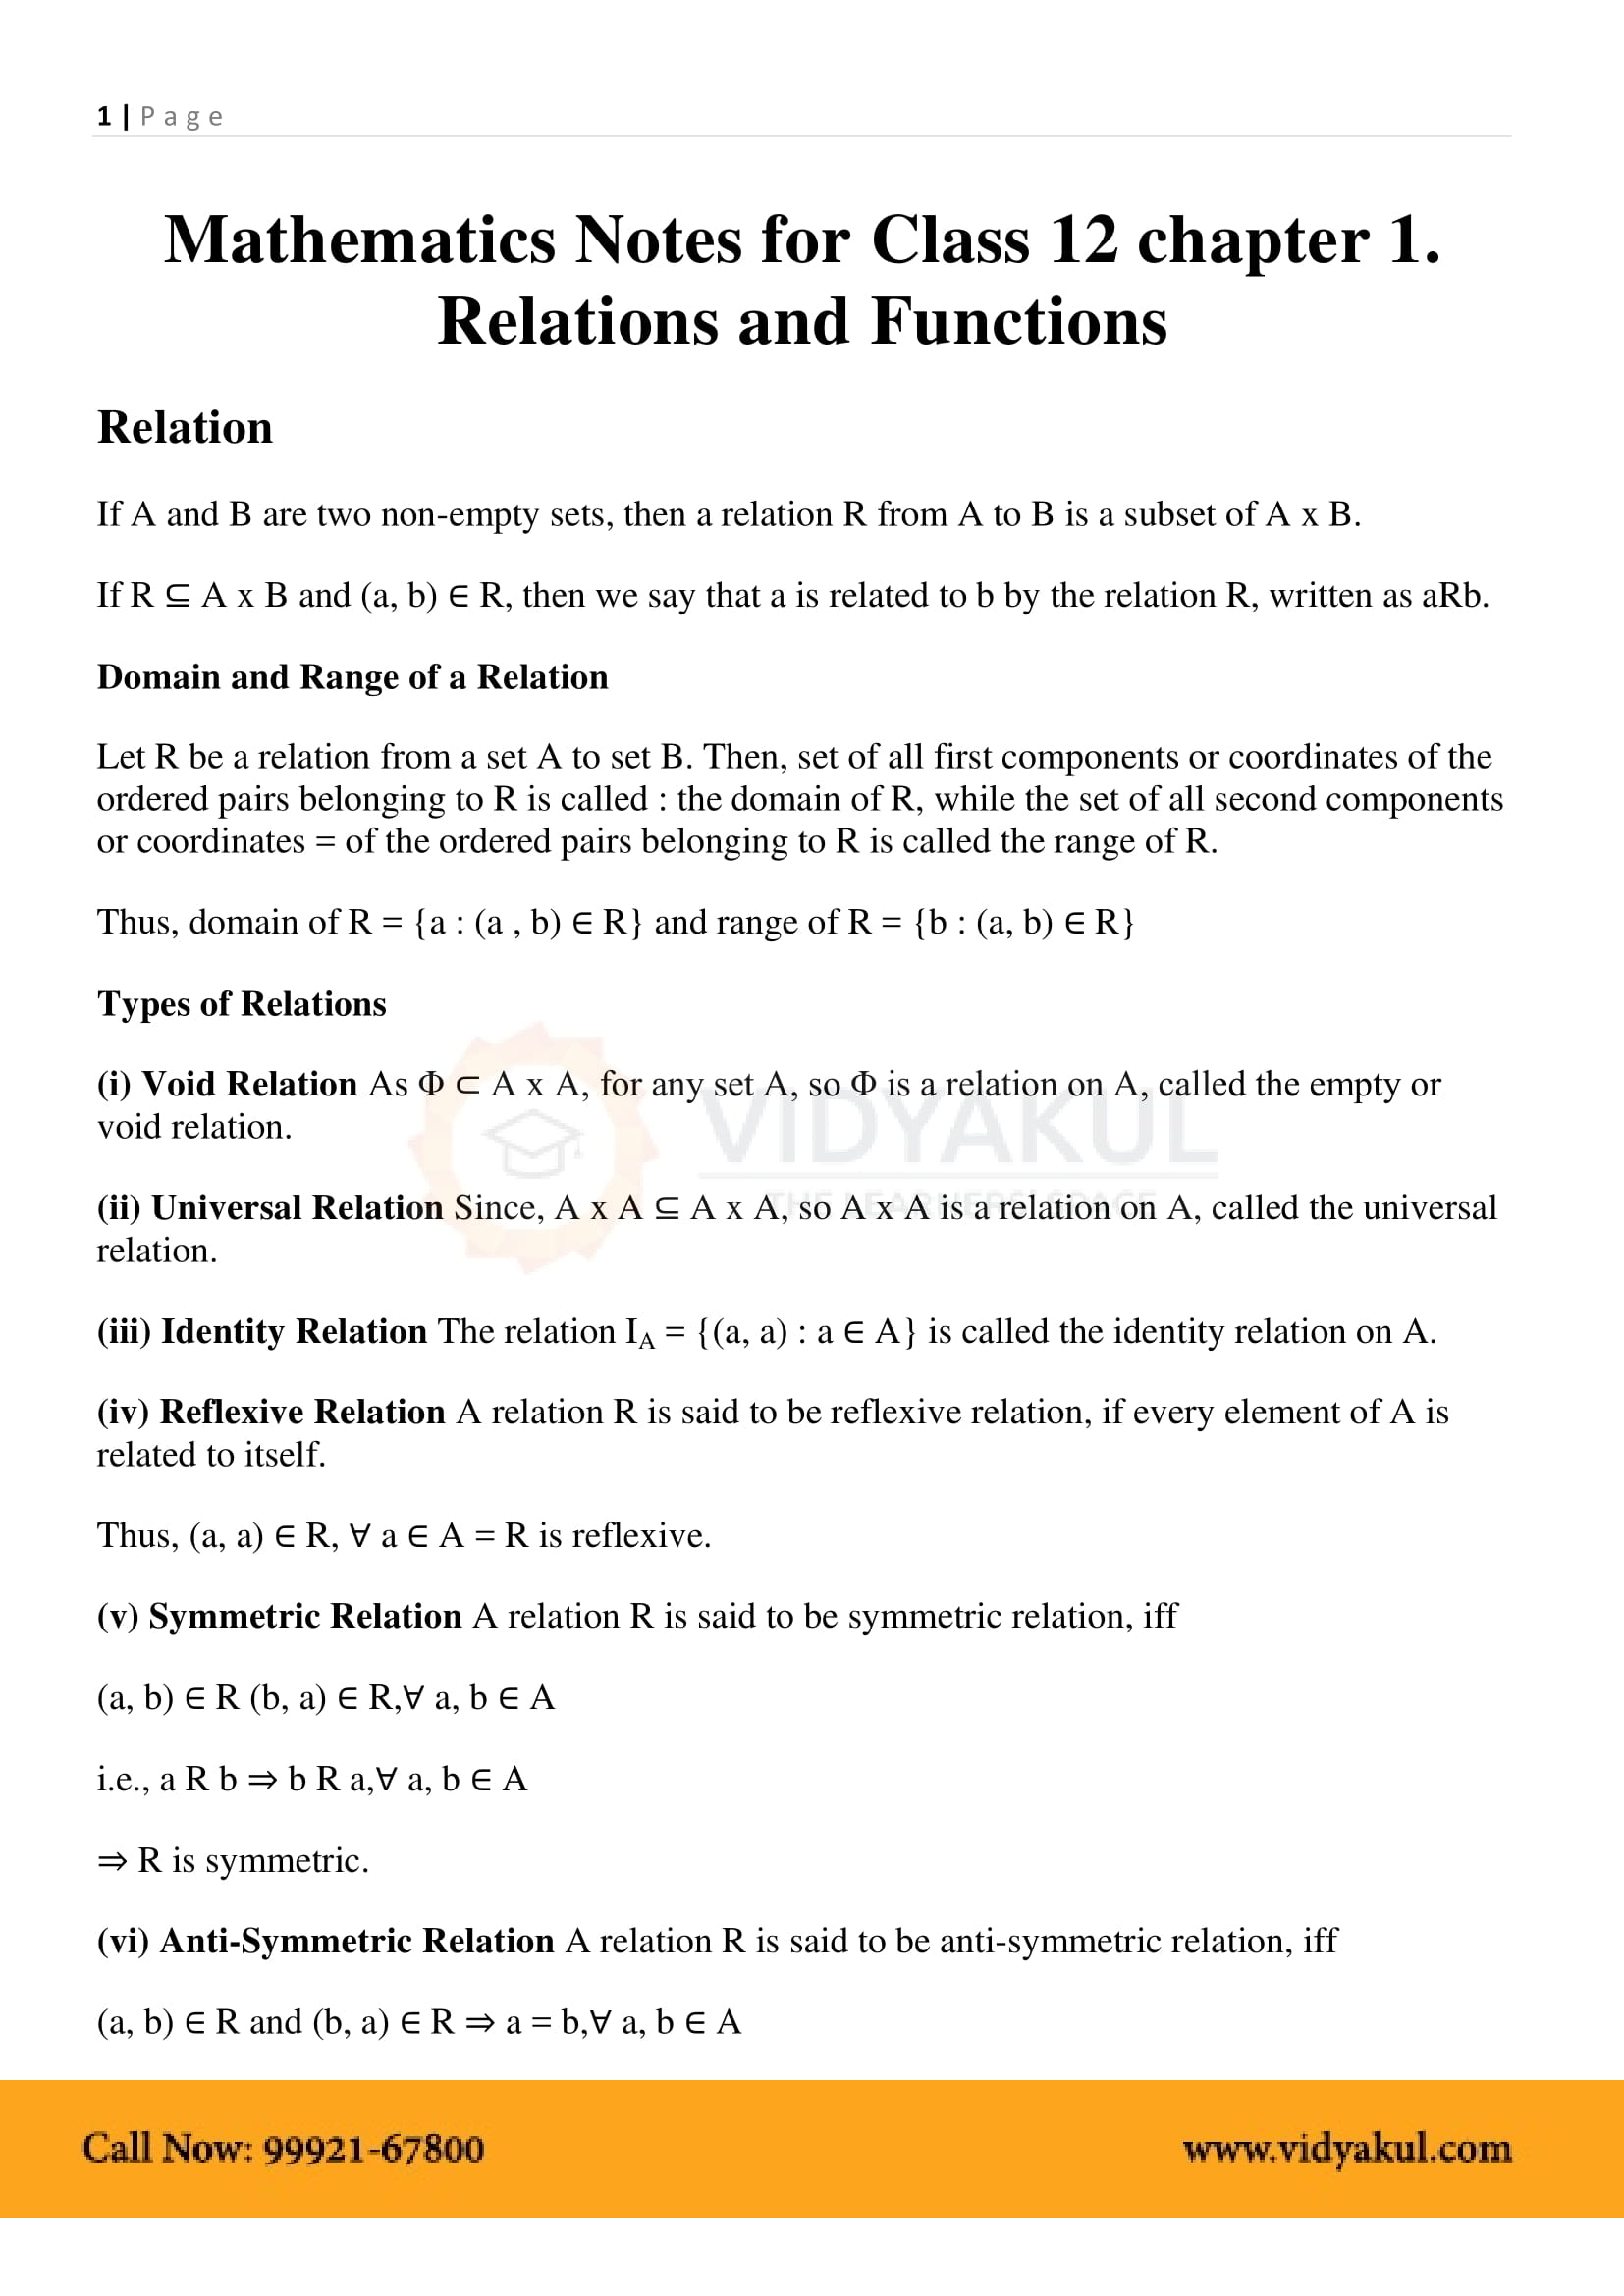 Relations and Functions Class 12 Notes | Vidyakul